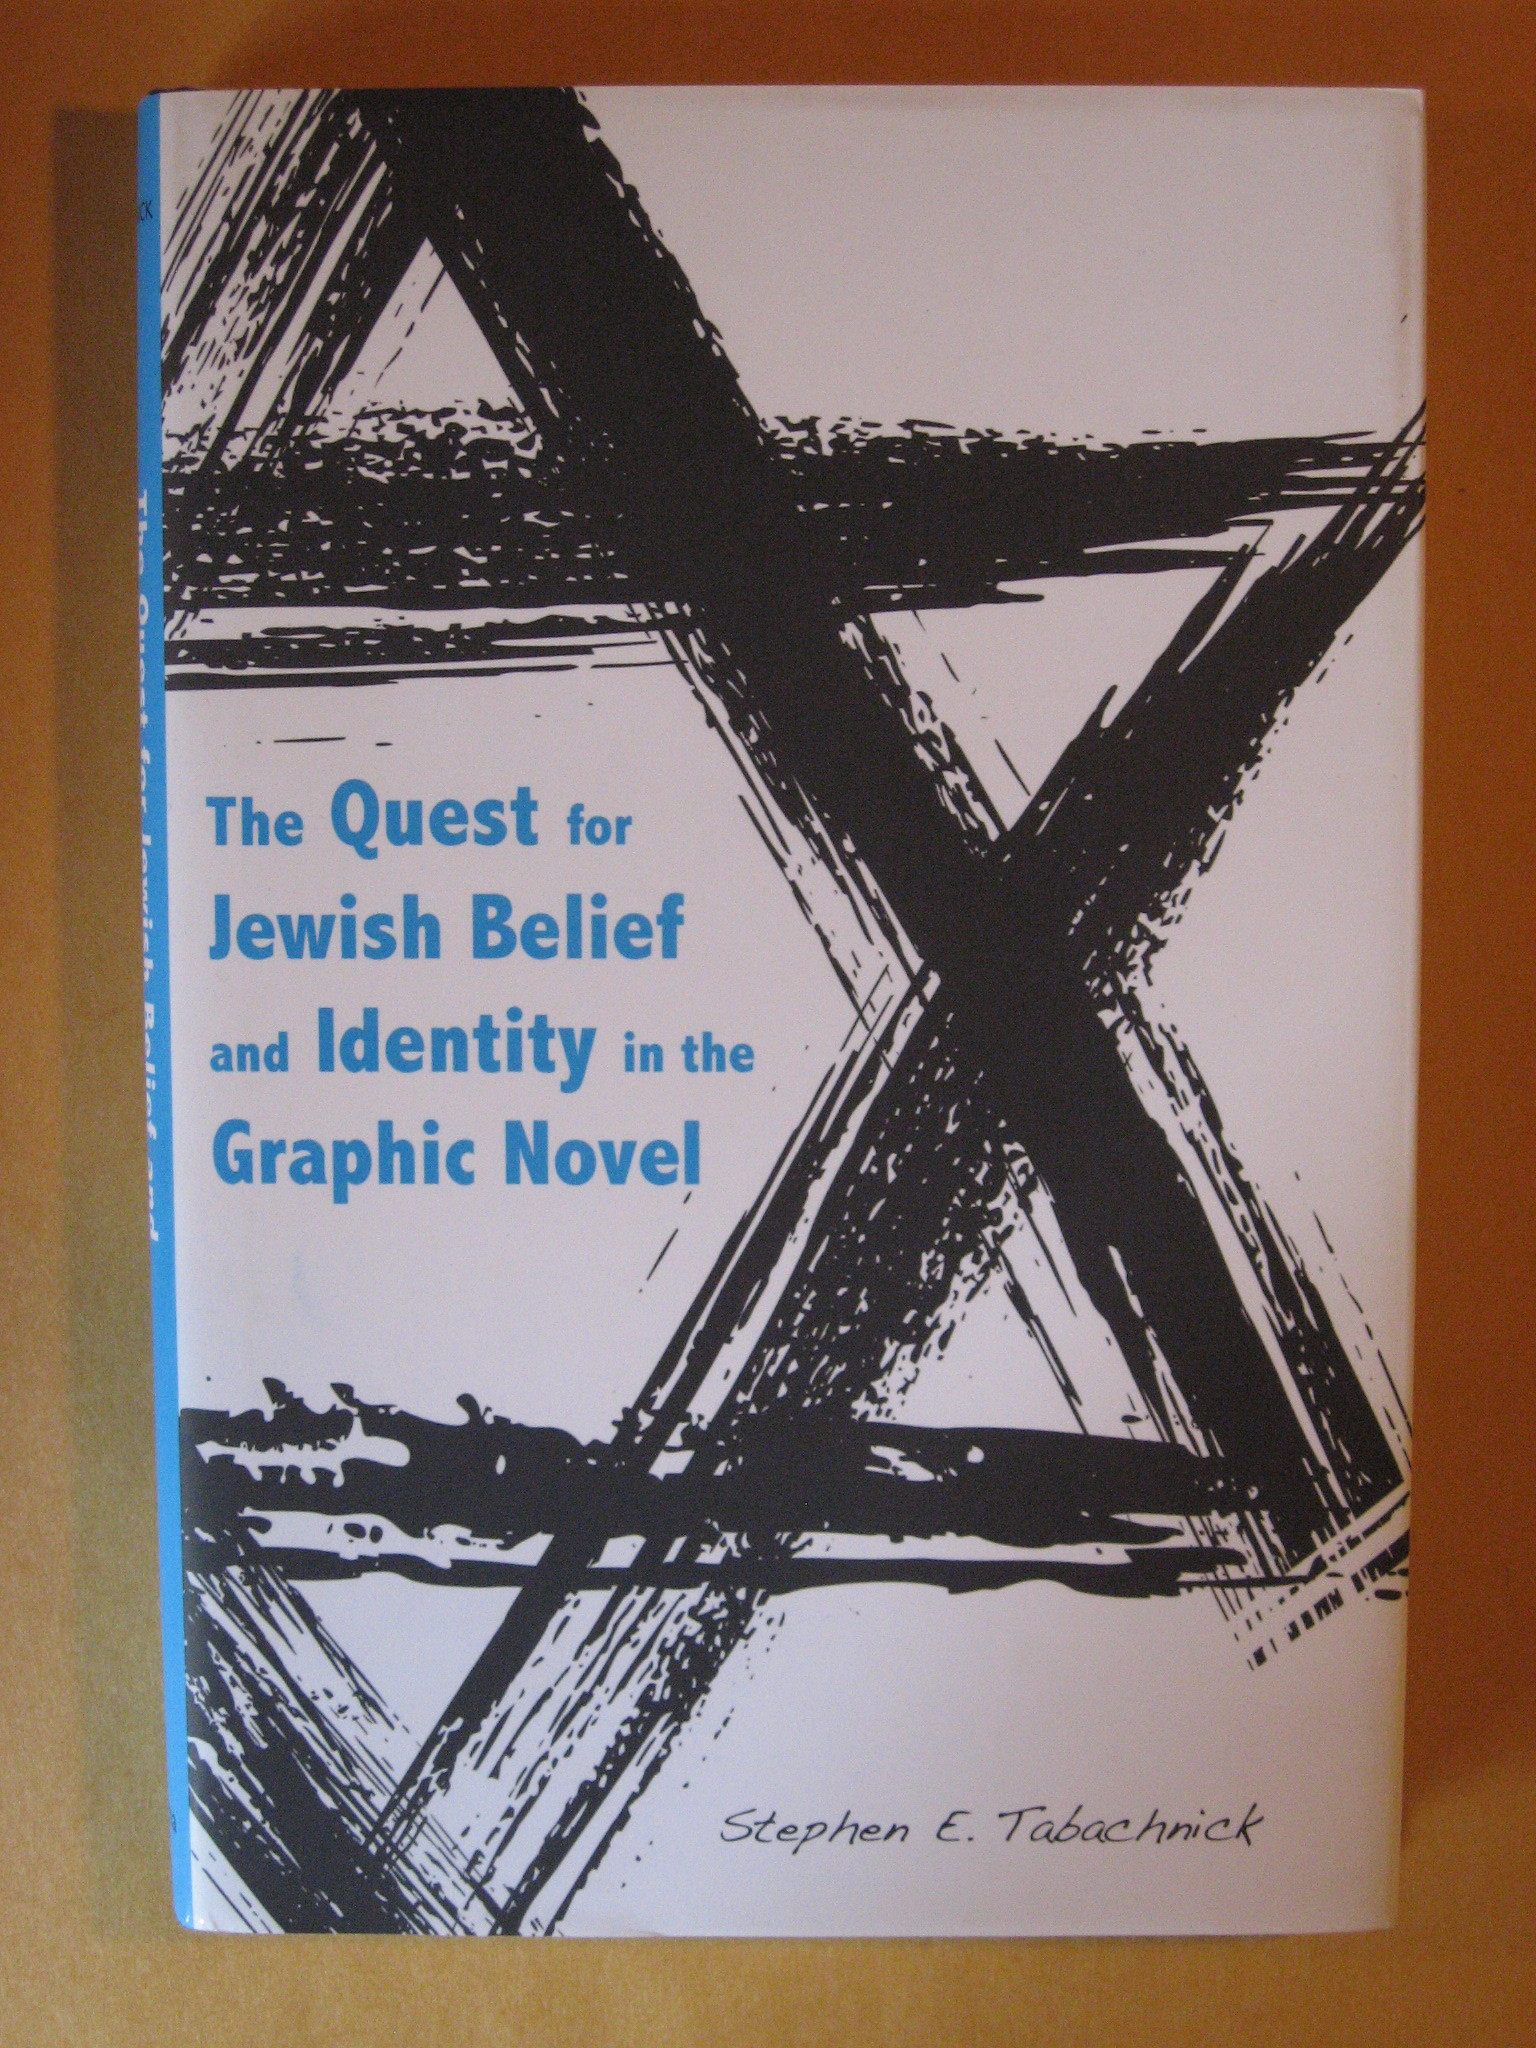 The Quest for Jewish Belief and Identity in the Graphic Novel (Jews and Judaism: History and Culture Series), Tabachnick, Stephen E.